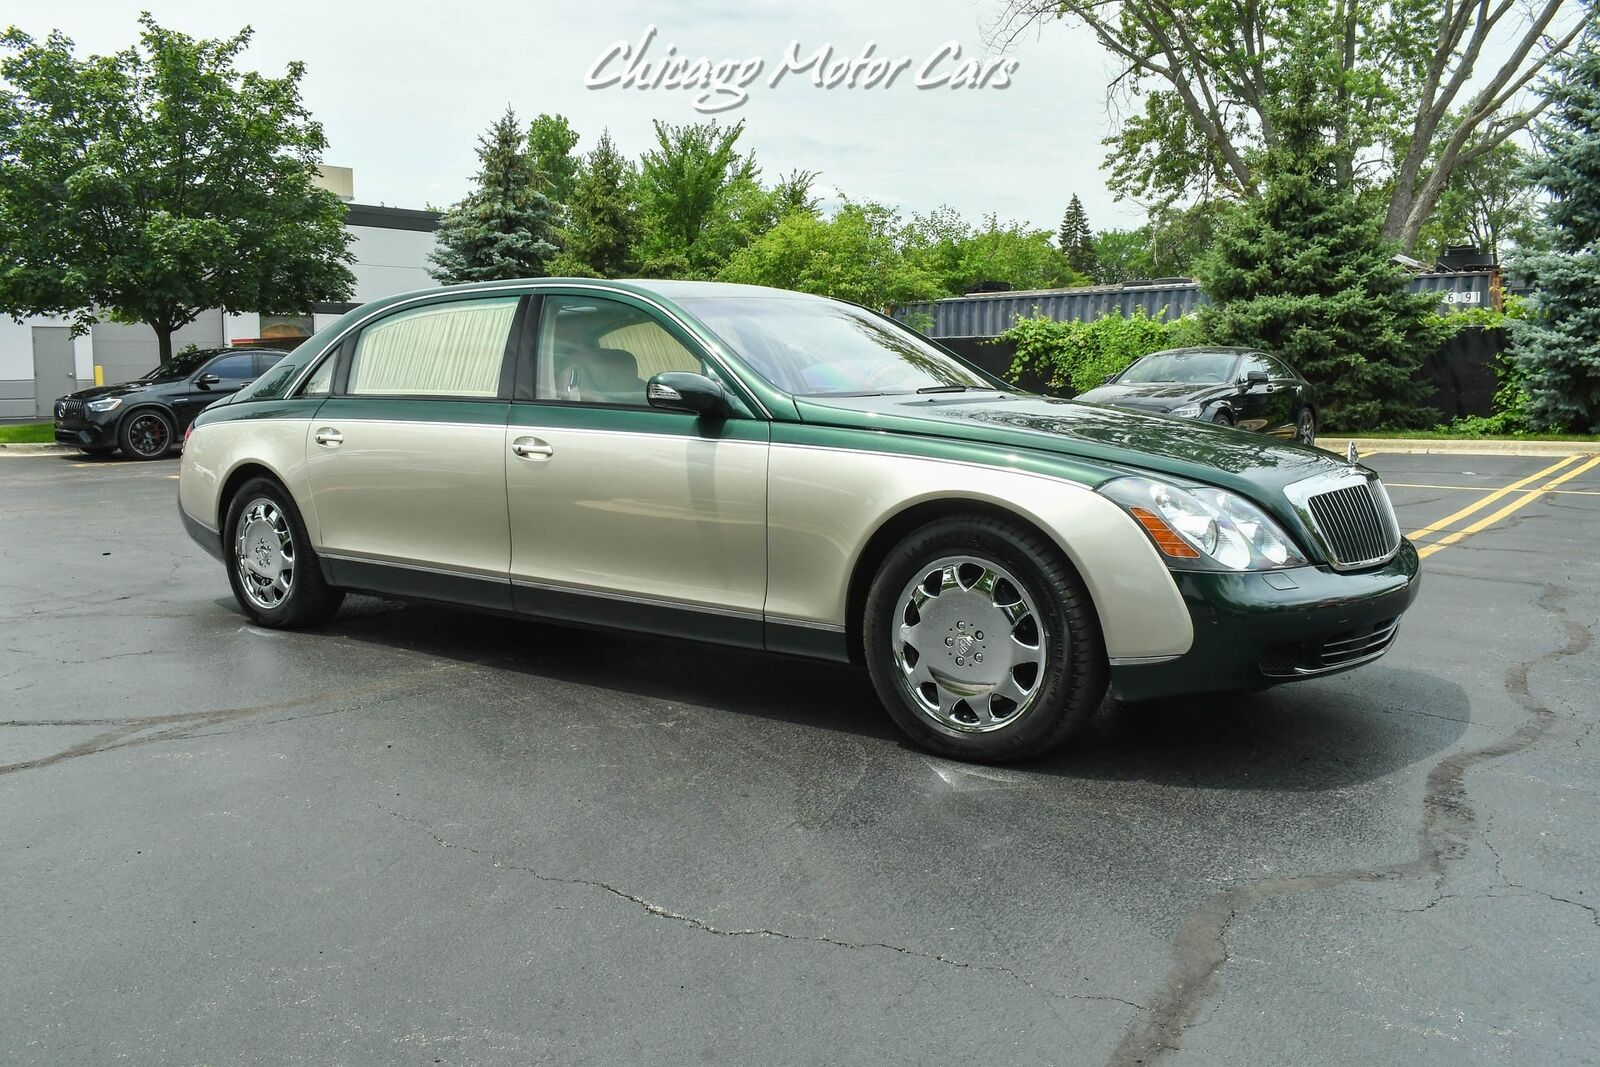 2004 Maybach 62 PANO ROOF! DUO-TONE! REAR WINDOW CURTAINS! LOW MIL 5L TT V12 sin